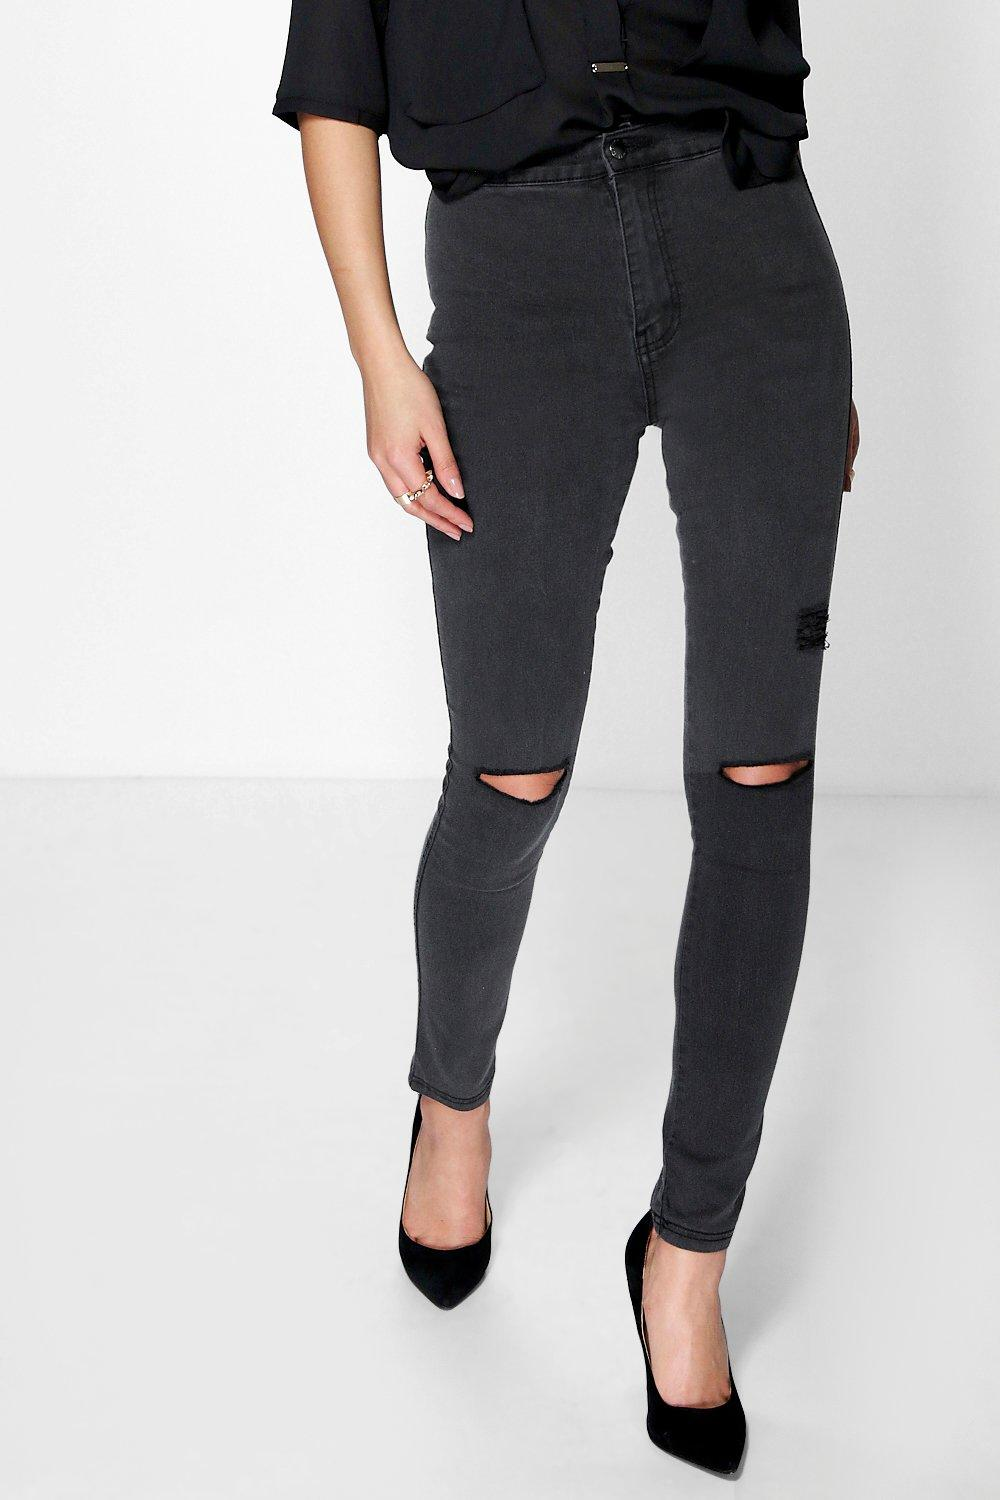 High Waisted Tube Jeans With Rips charcoal